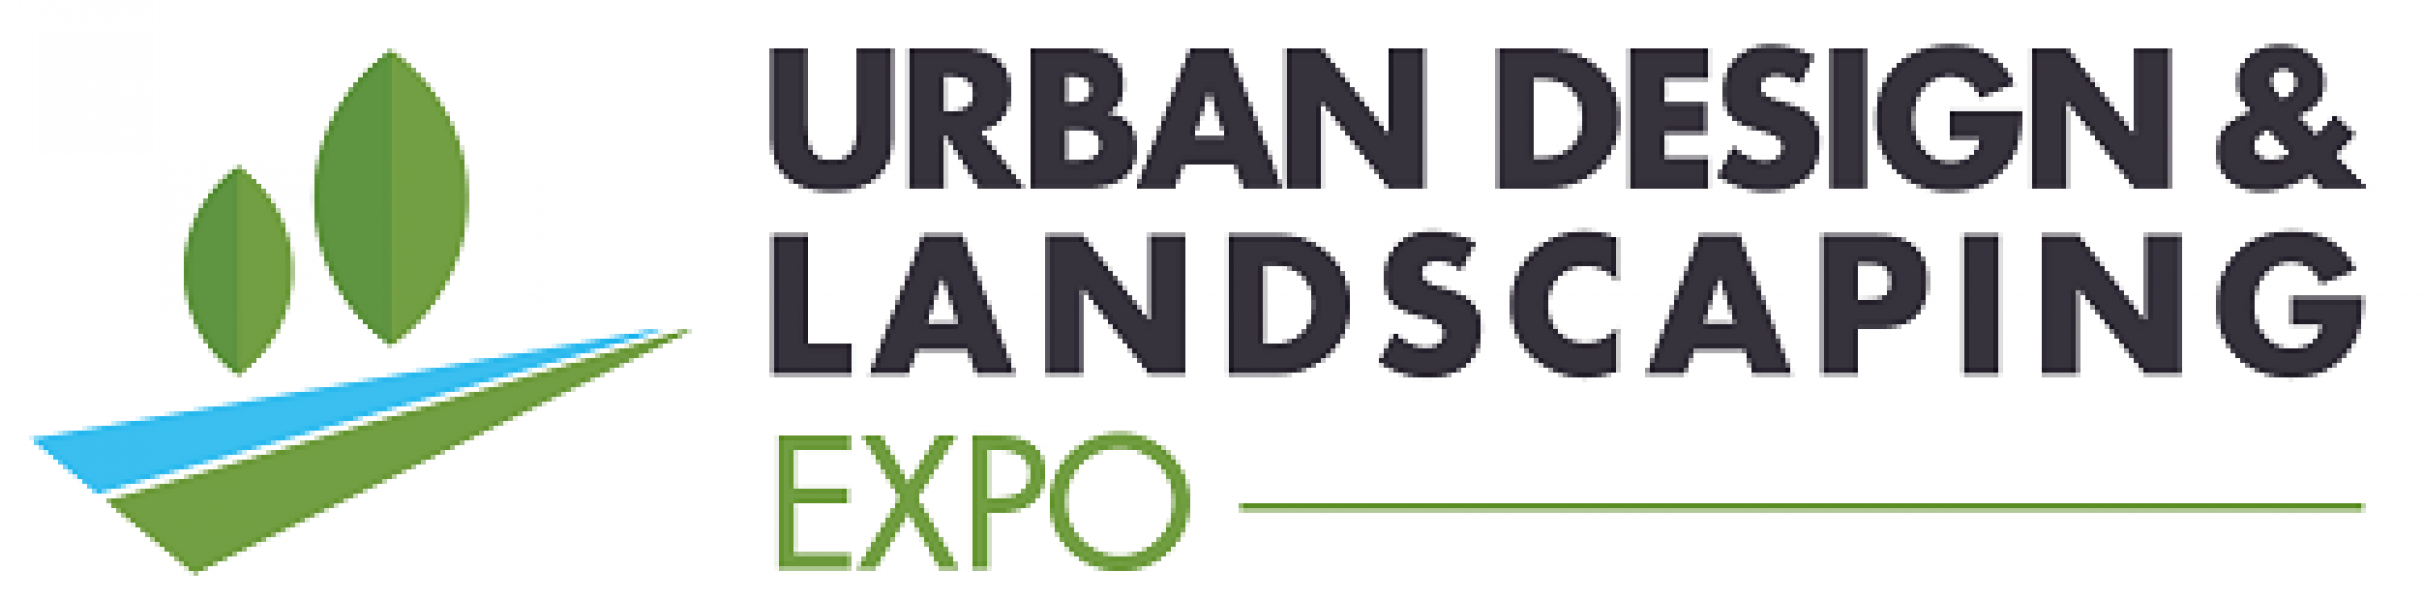 Logotipo de Urban Design & Landscaping Expo